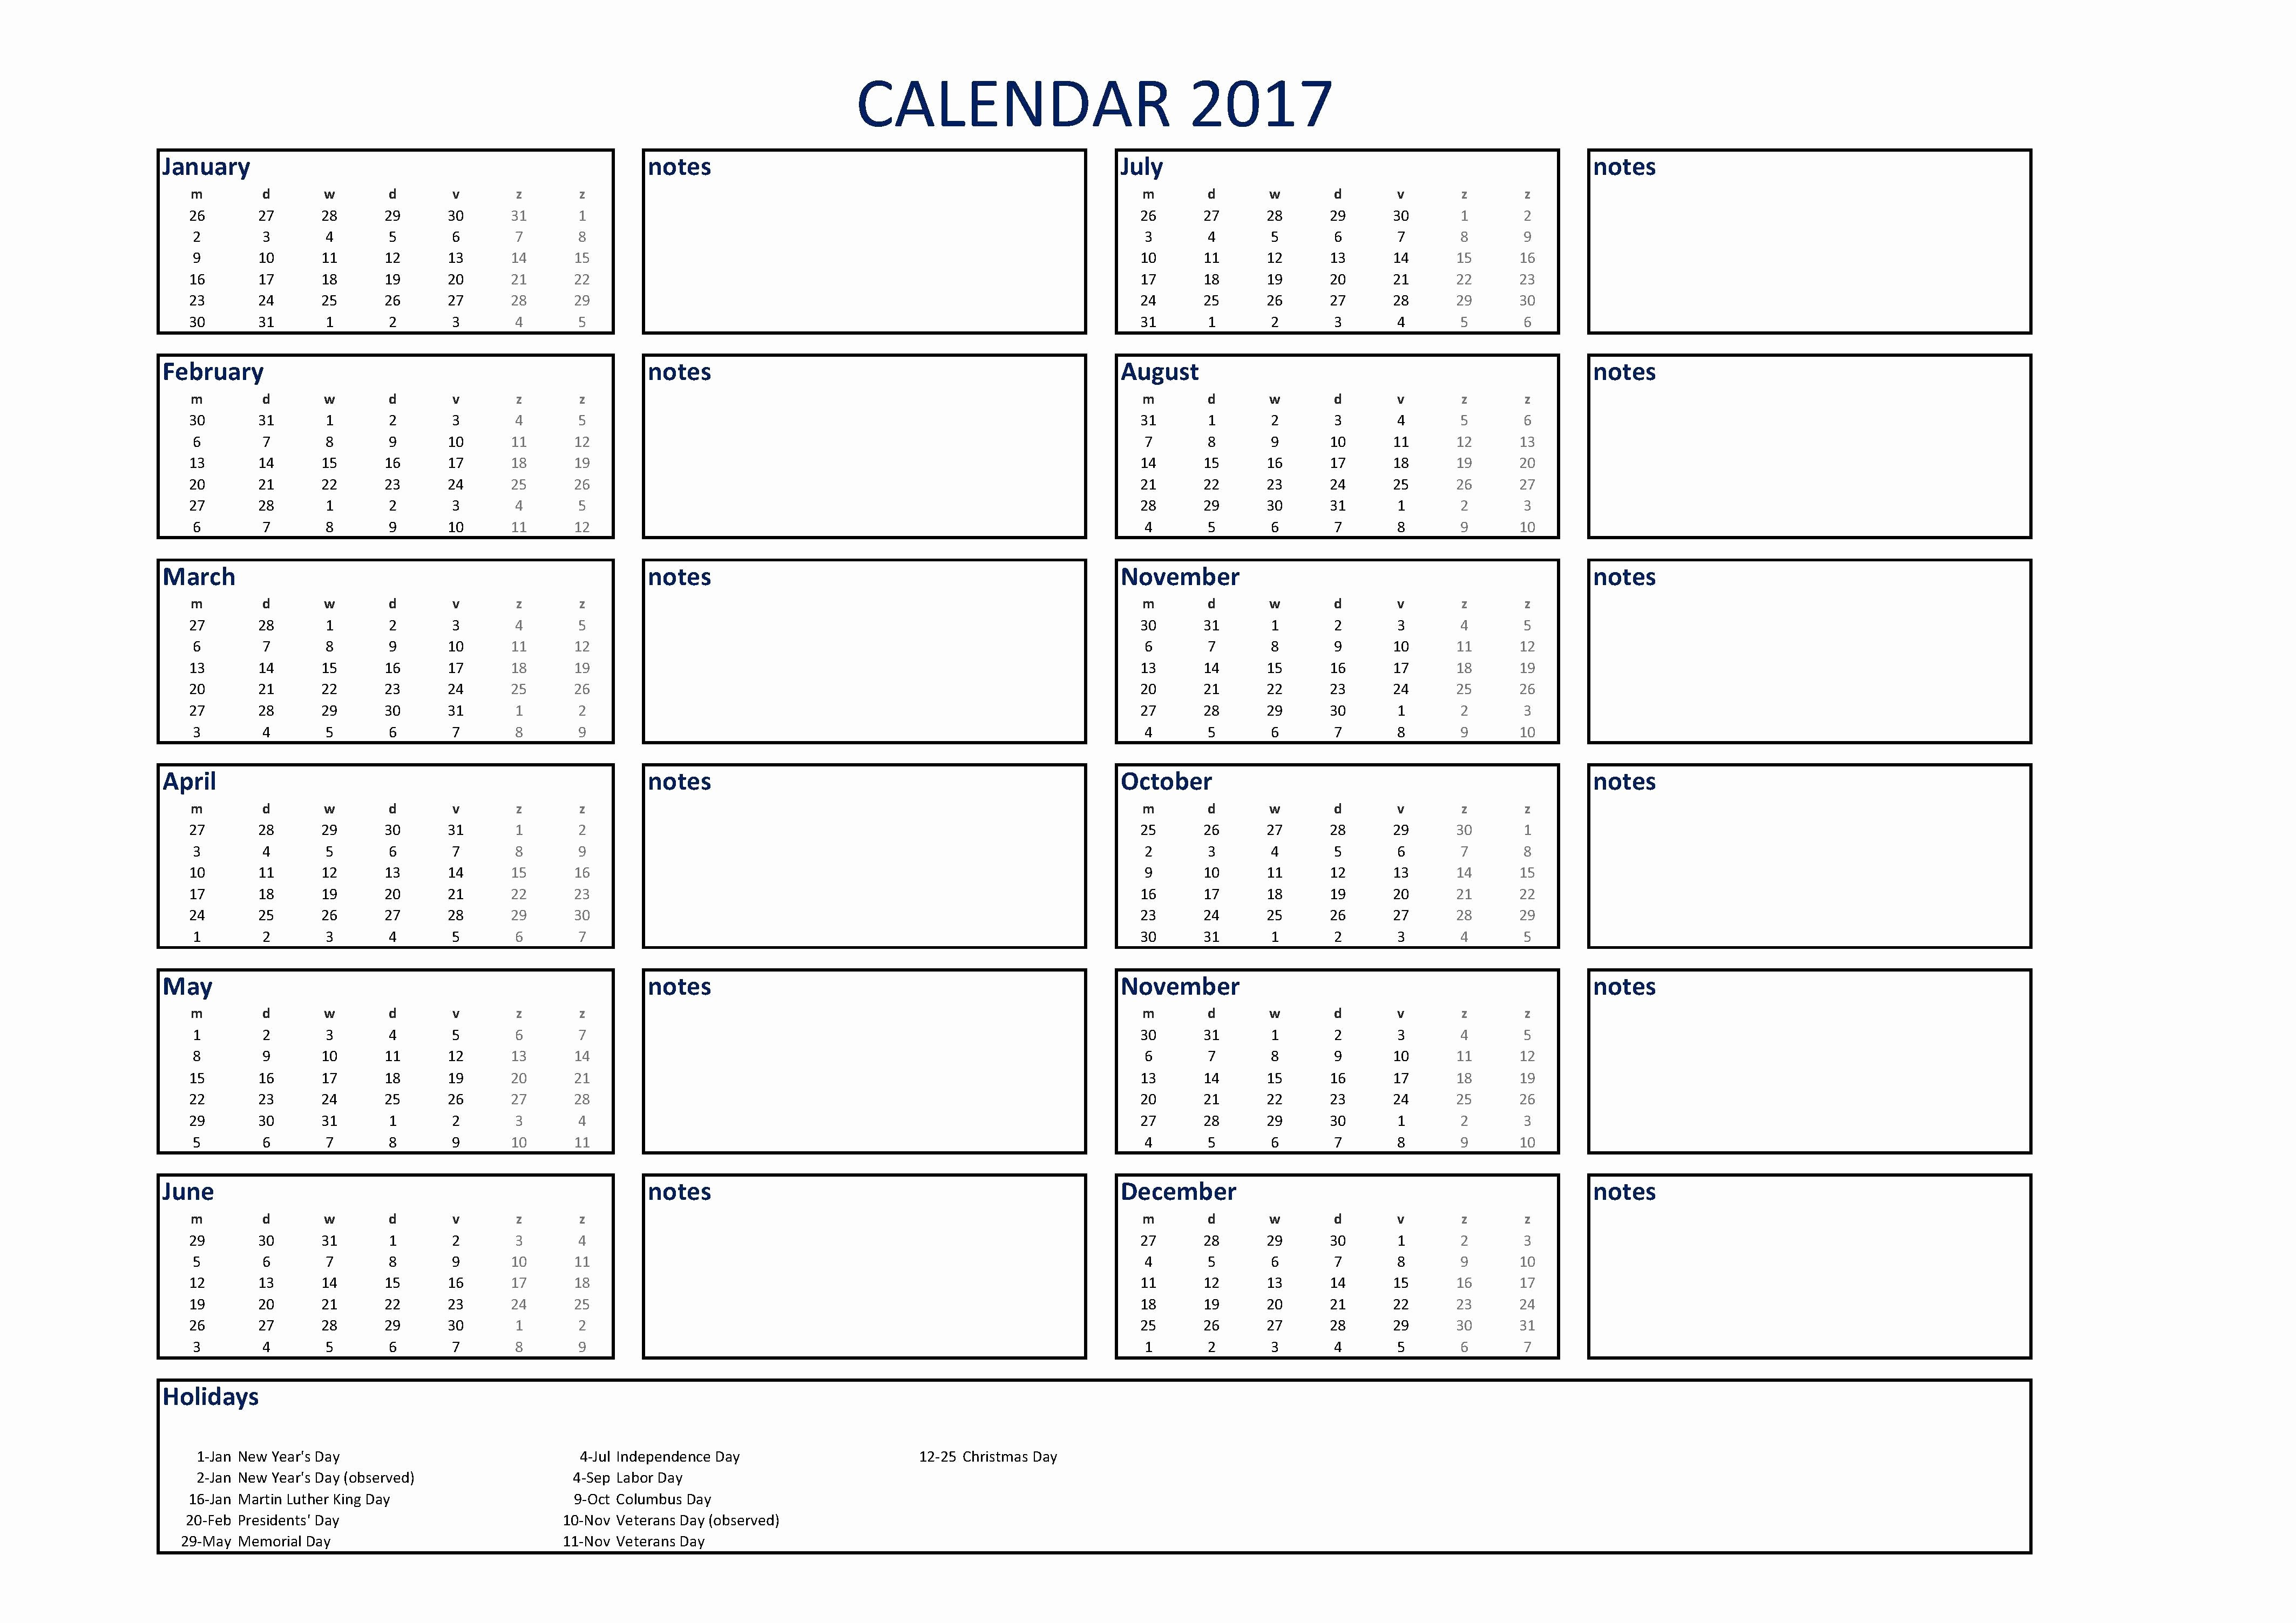 2017 Calendar Template with Notes New Free 2017 Calendar Excel A3 with Notes